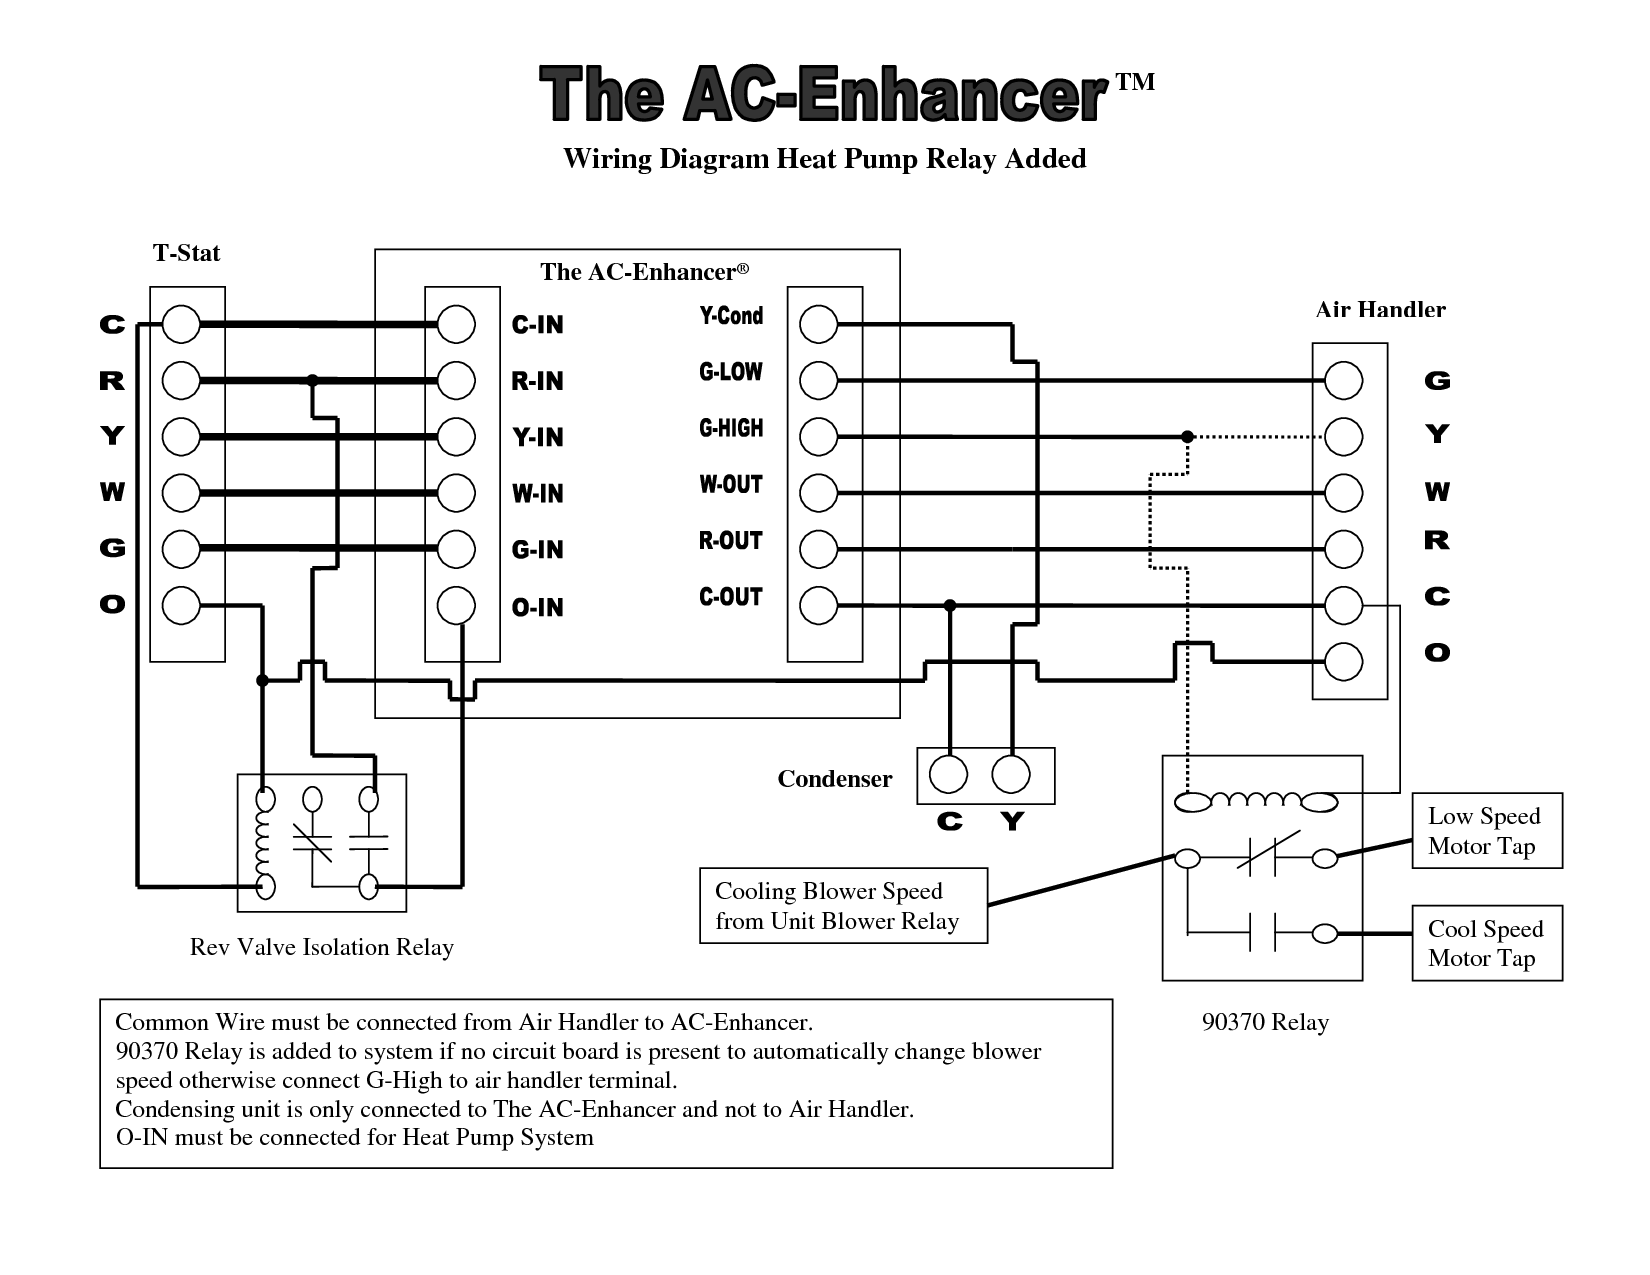 wiring diagram goodman heat pump wiring diagram Goodman Thermostat Wiring Diagram wiring diagram for heat pump system the goodman thermostat wiring diagram